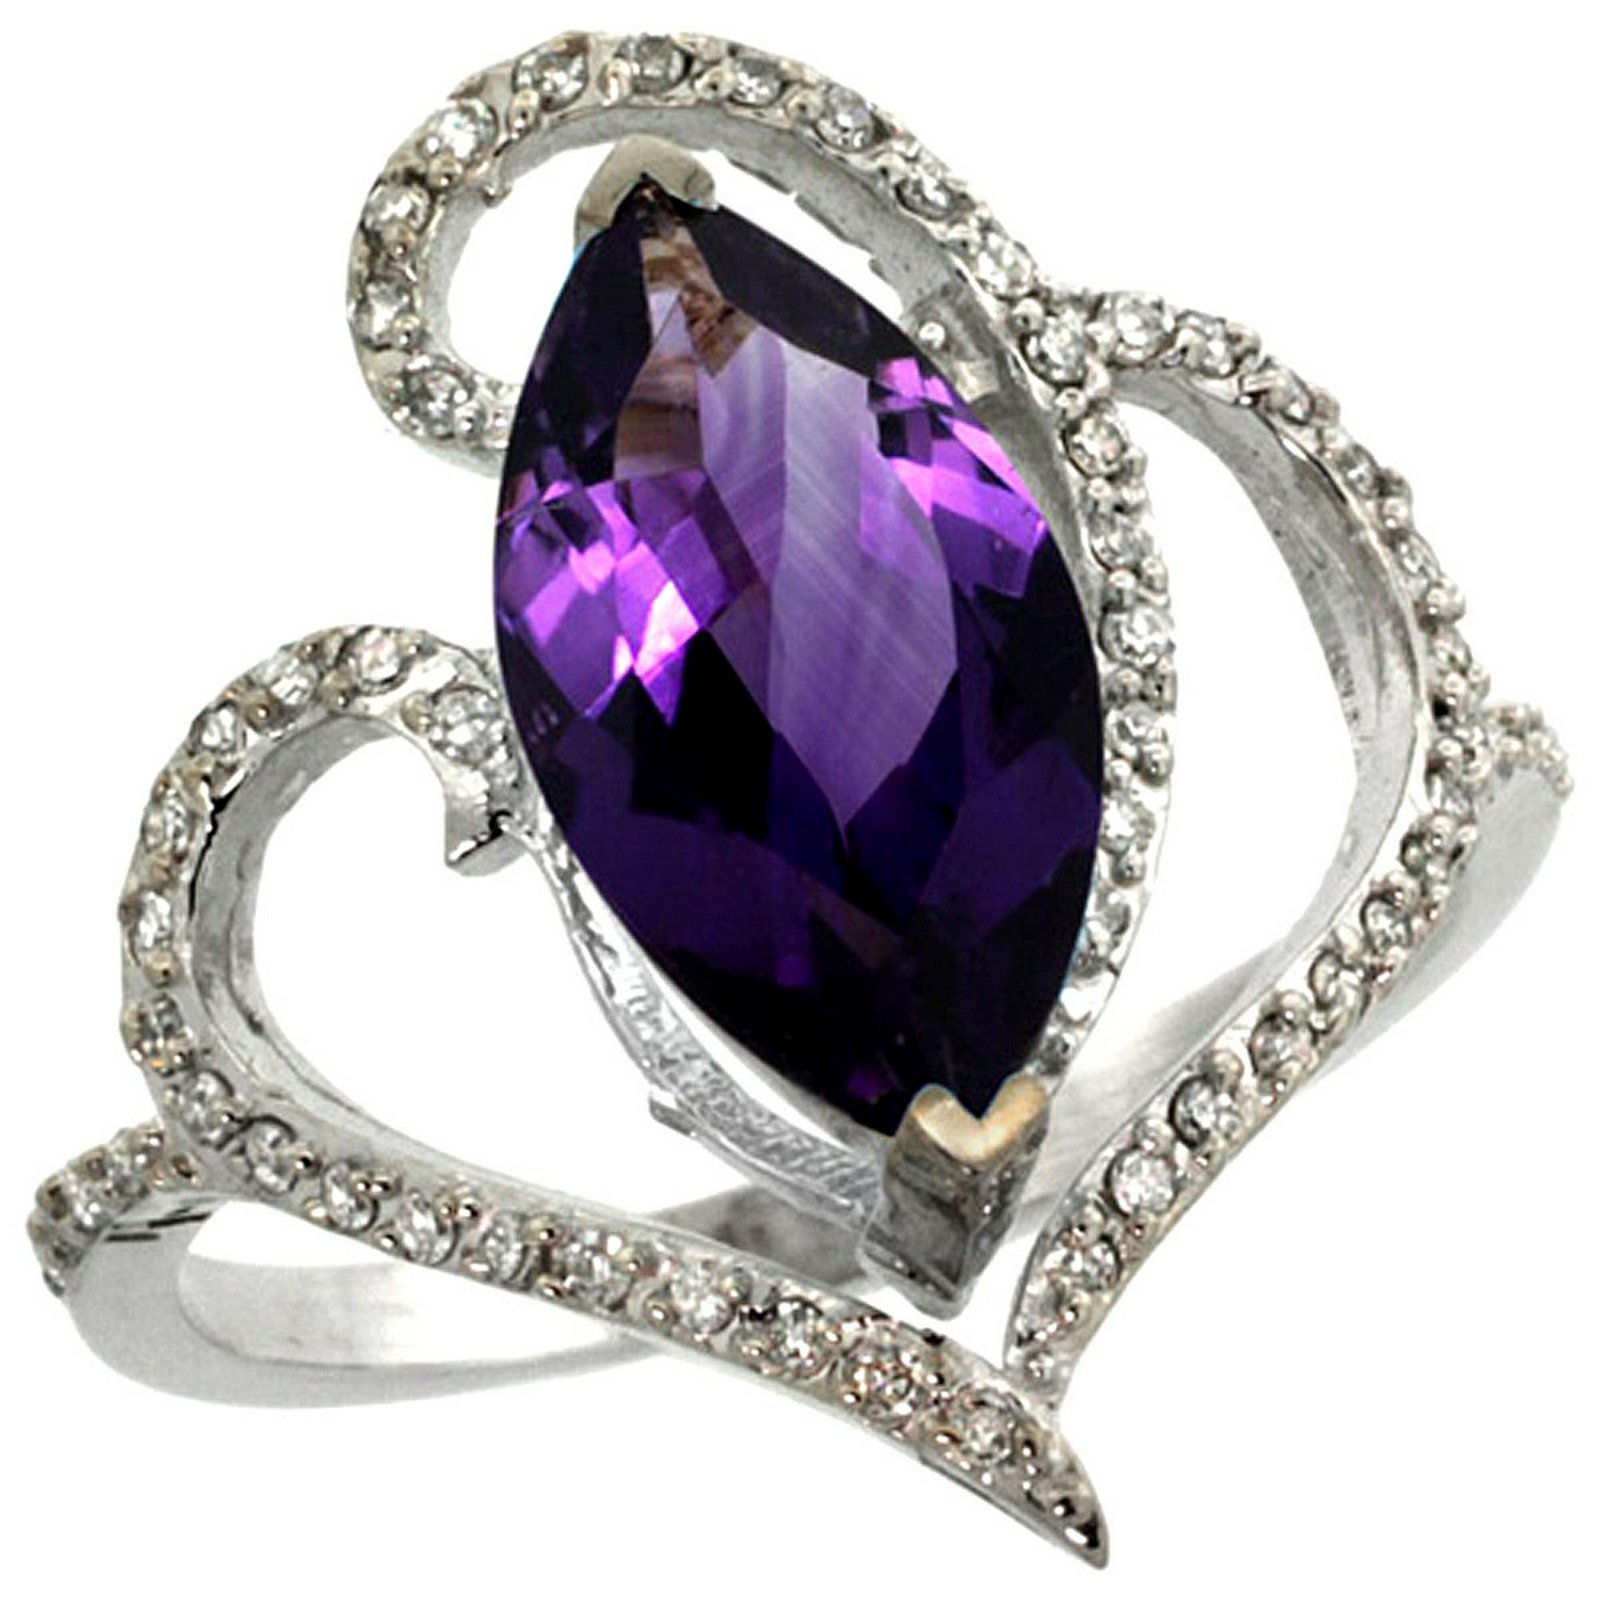 Natural 3.33 ctw Amethyst & Diamond Engagement Ring 14K